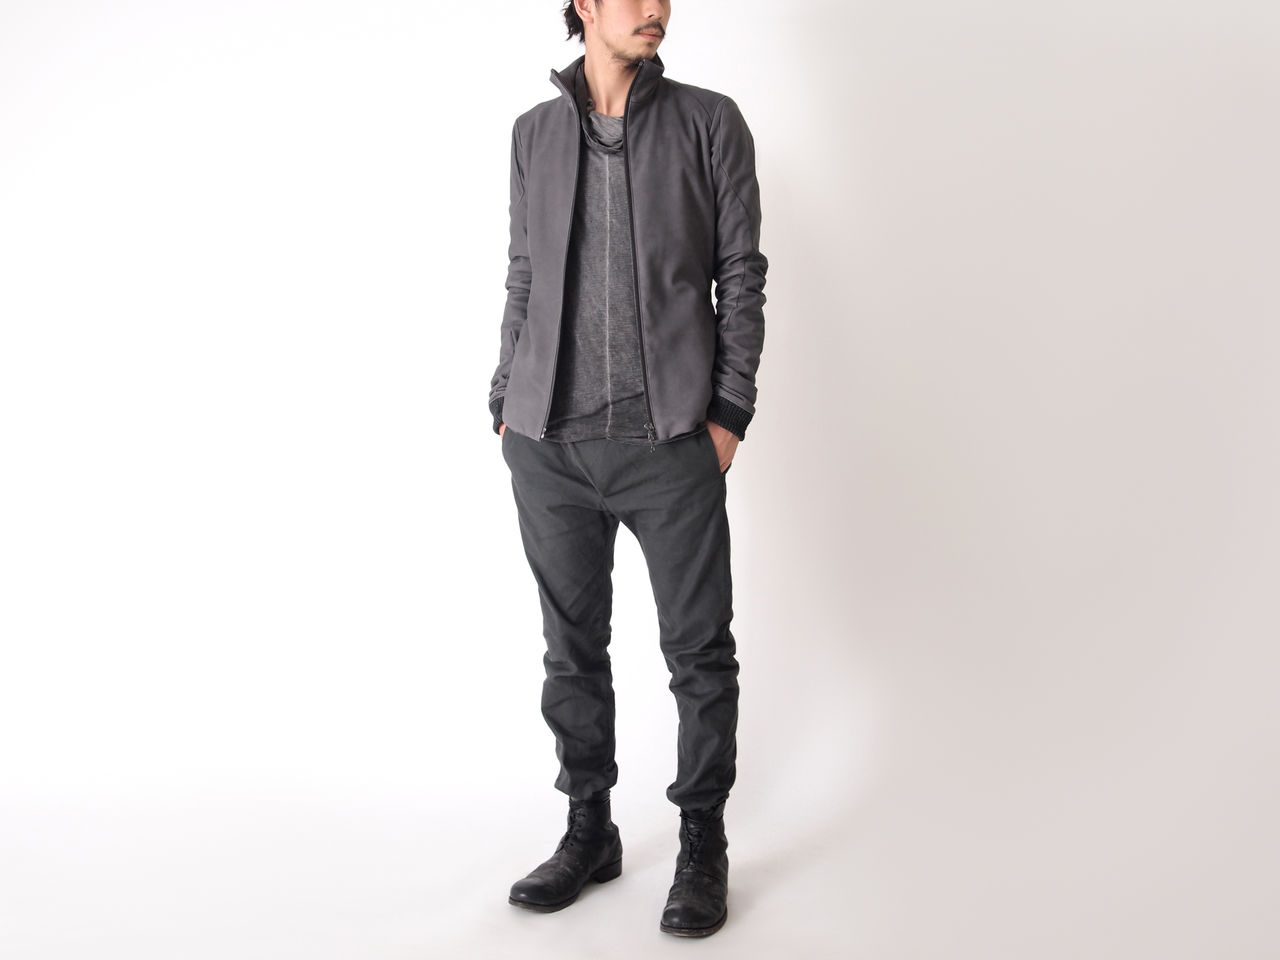 styling_1024_1-top